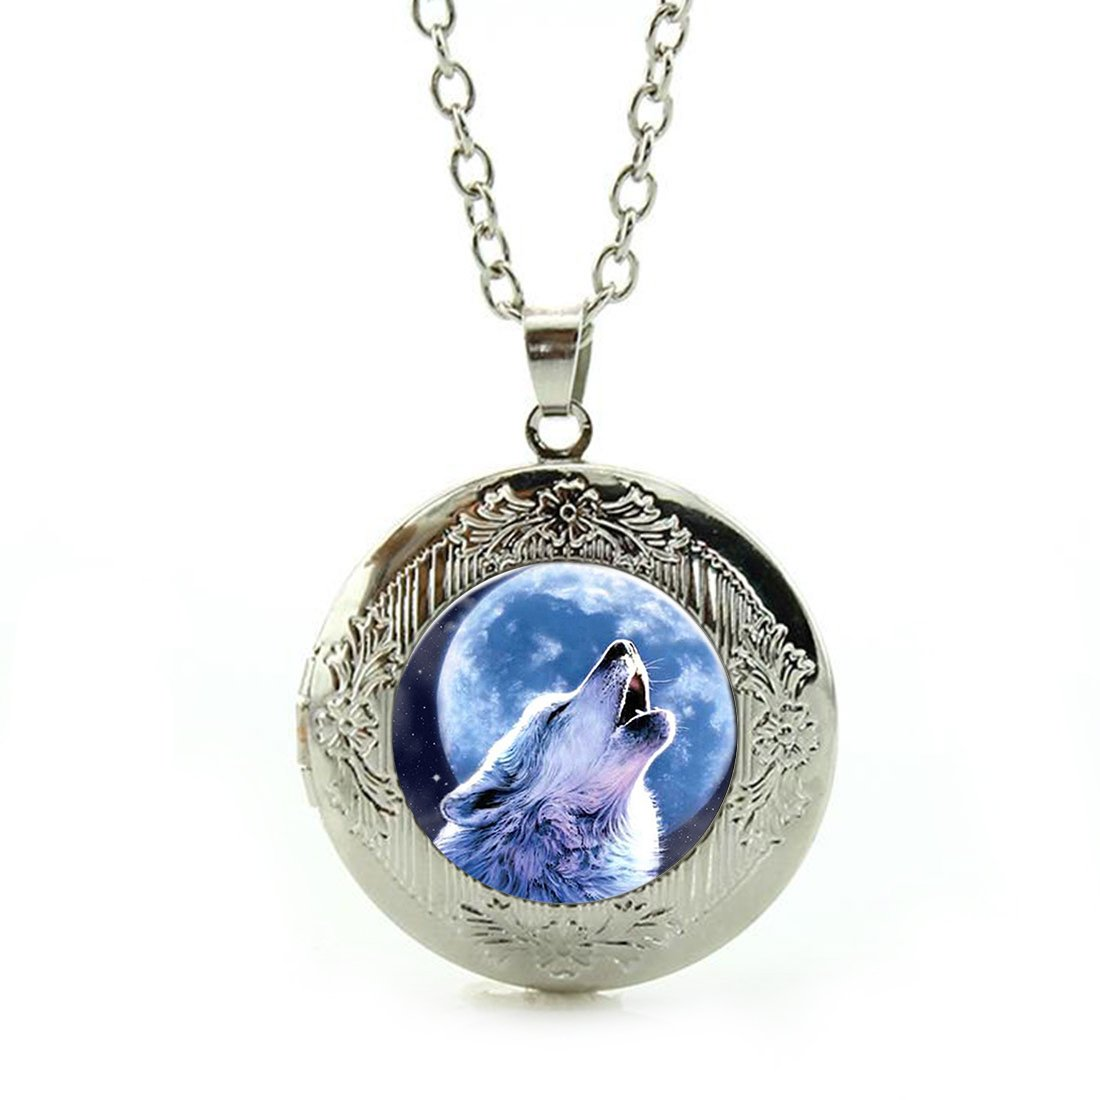 Women's Custom Locket Closure Pendant Necklace Lunar Howl Wolf Included Free Silver Chain, Best Gift Set